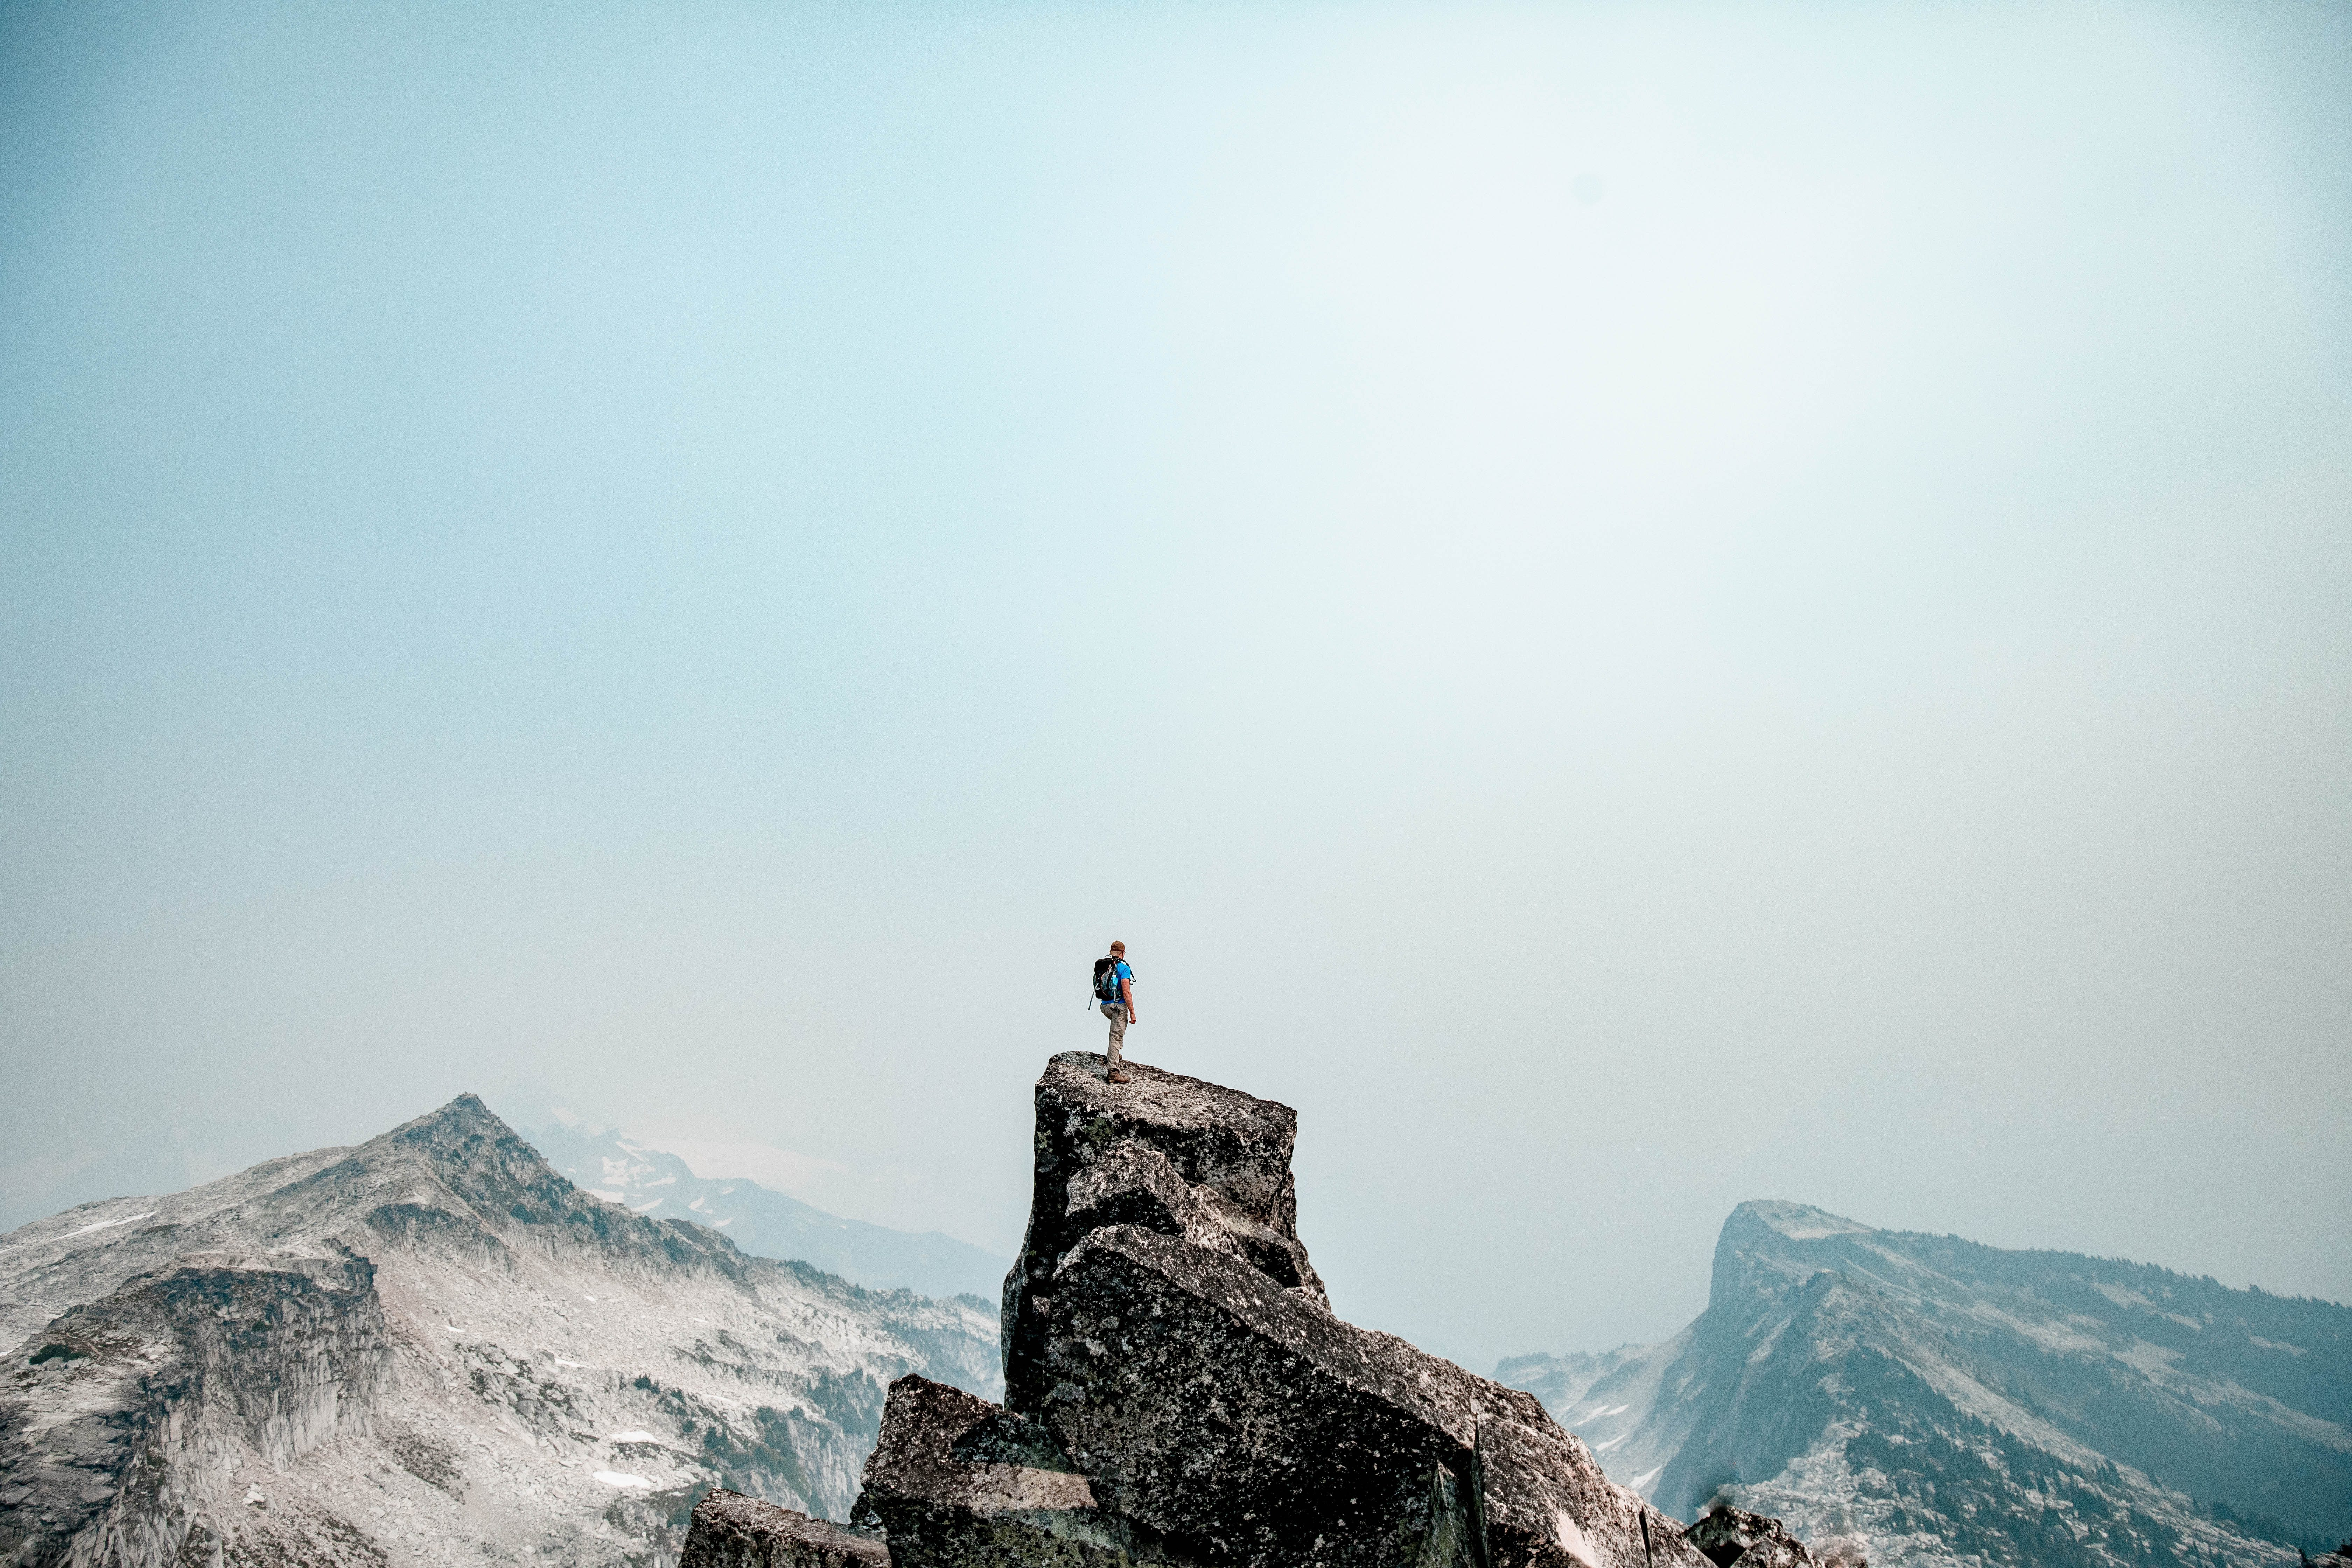 Man standing on cliff overlooking mountains.